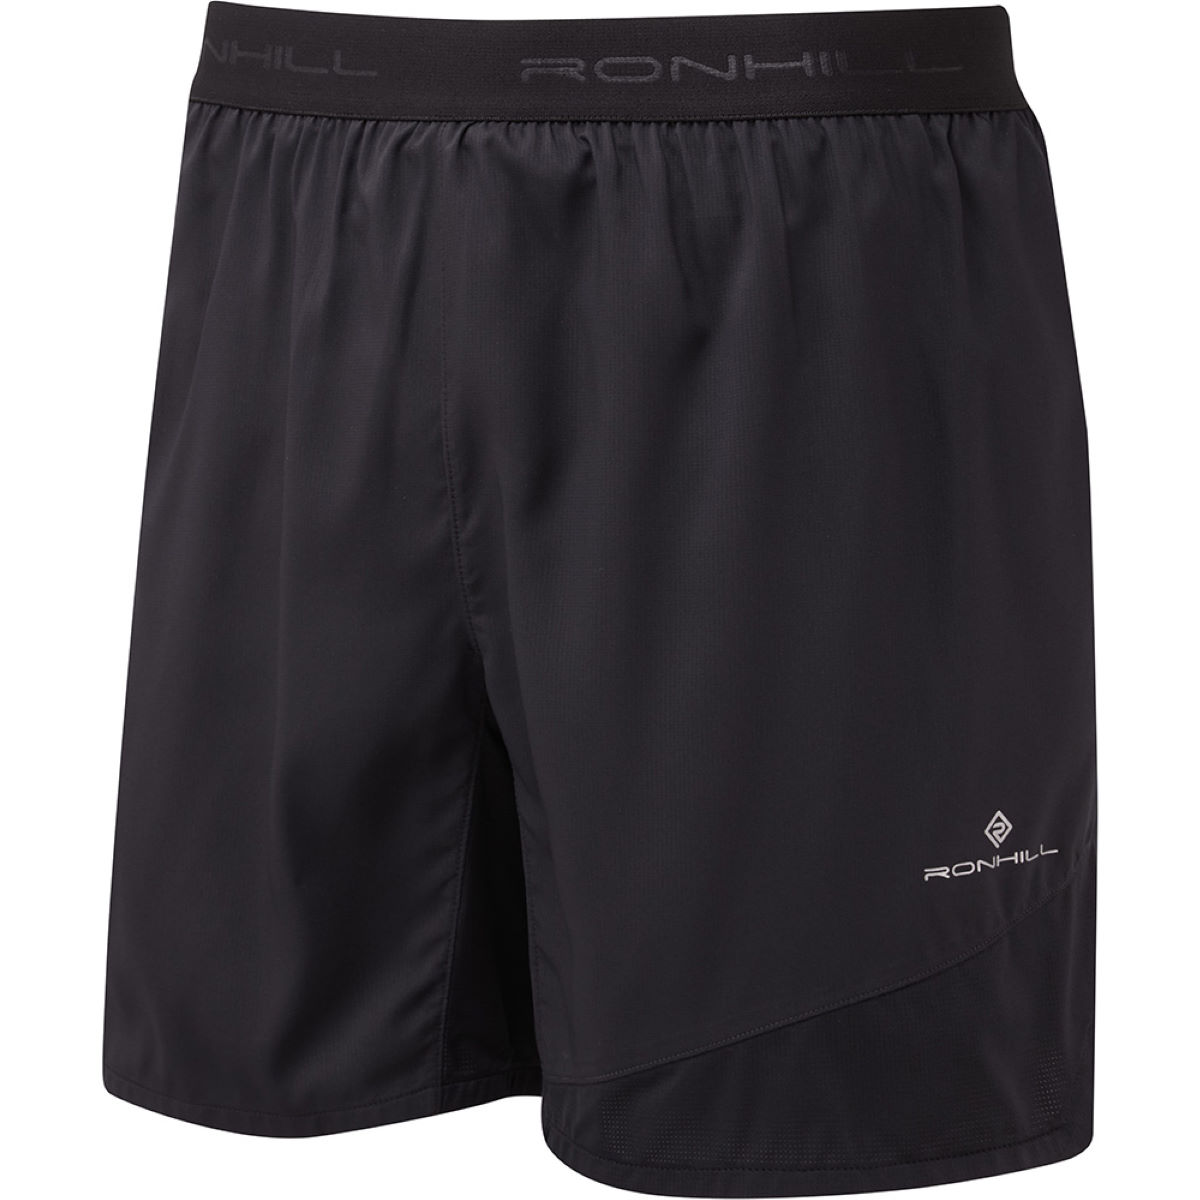 "Ronhill Ronhill Stride Revive 5"" Short   Shorts"